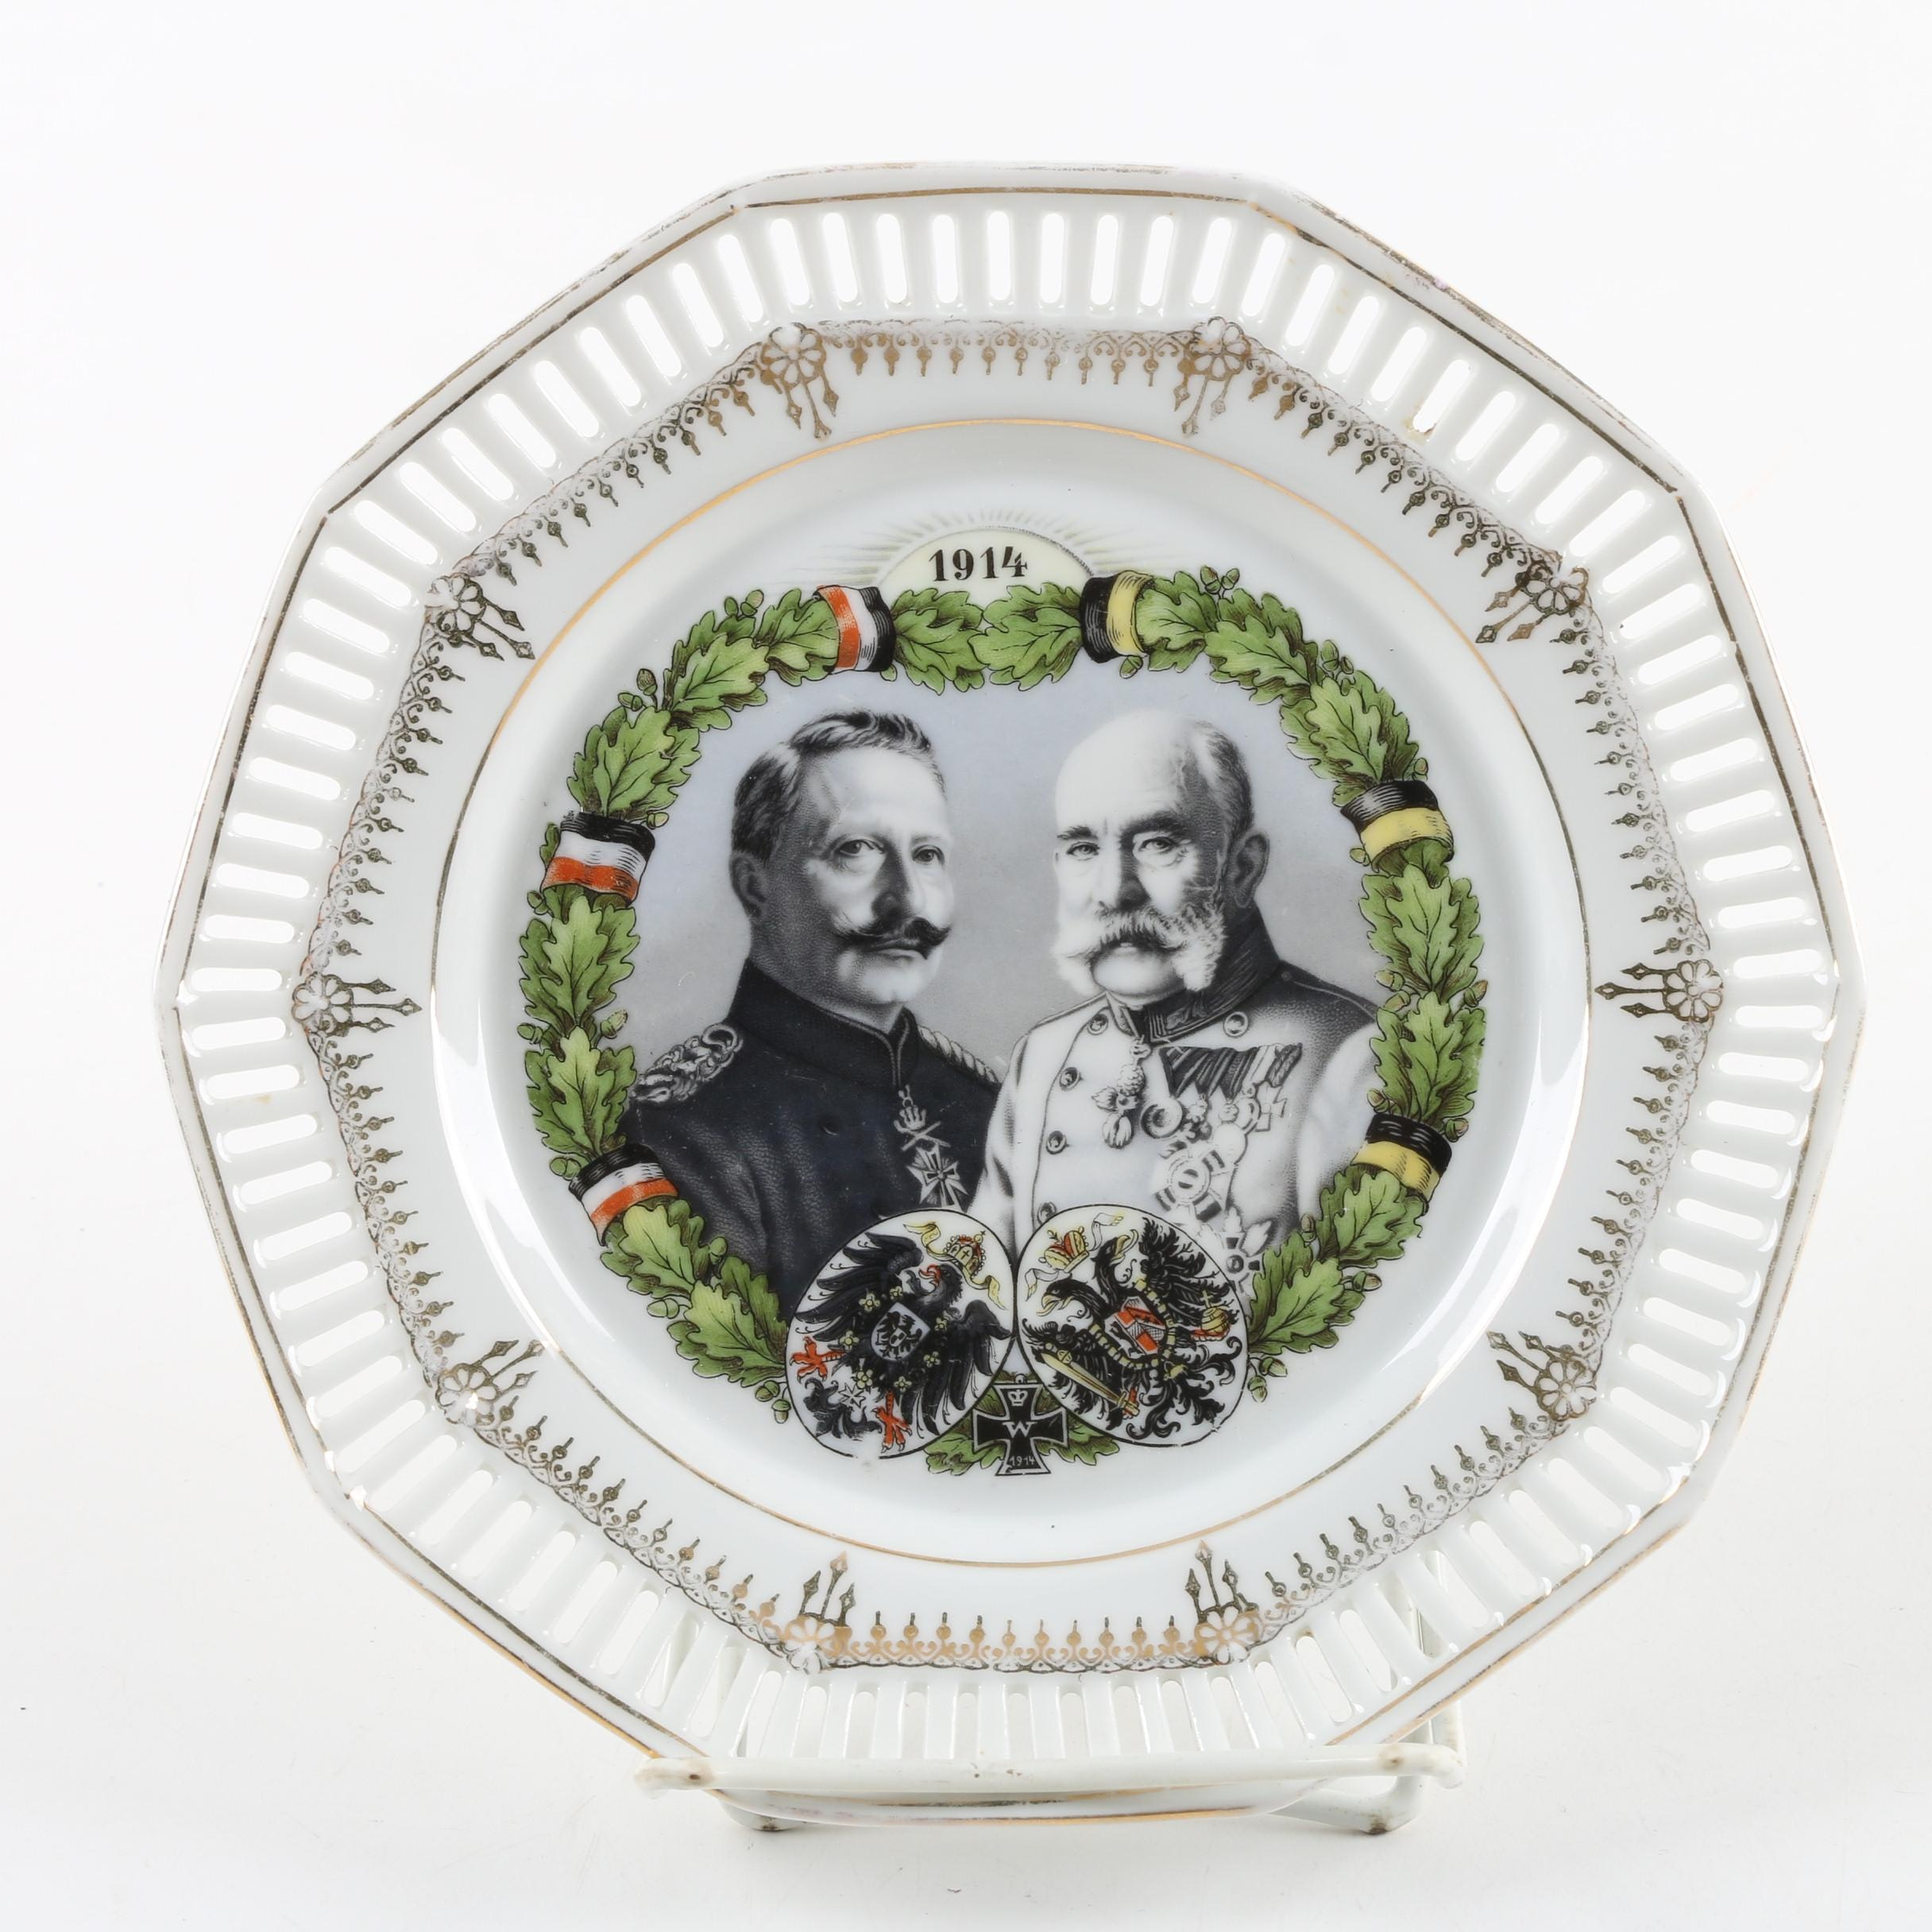 Commemorative Wilhelm II and Franz Joseph World War One Plate